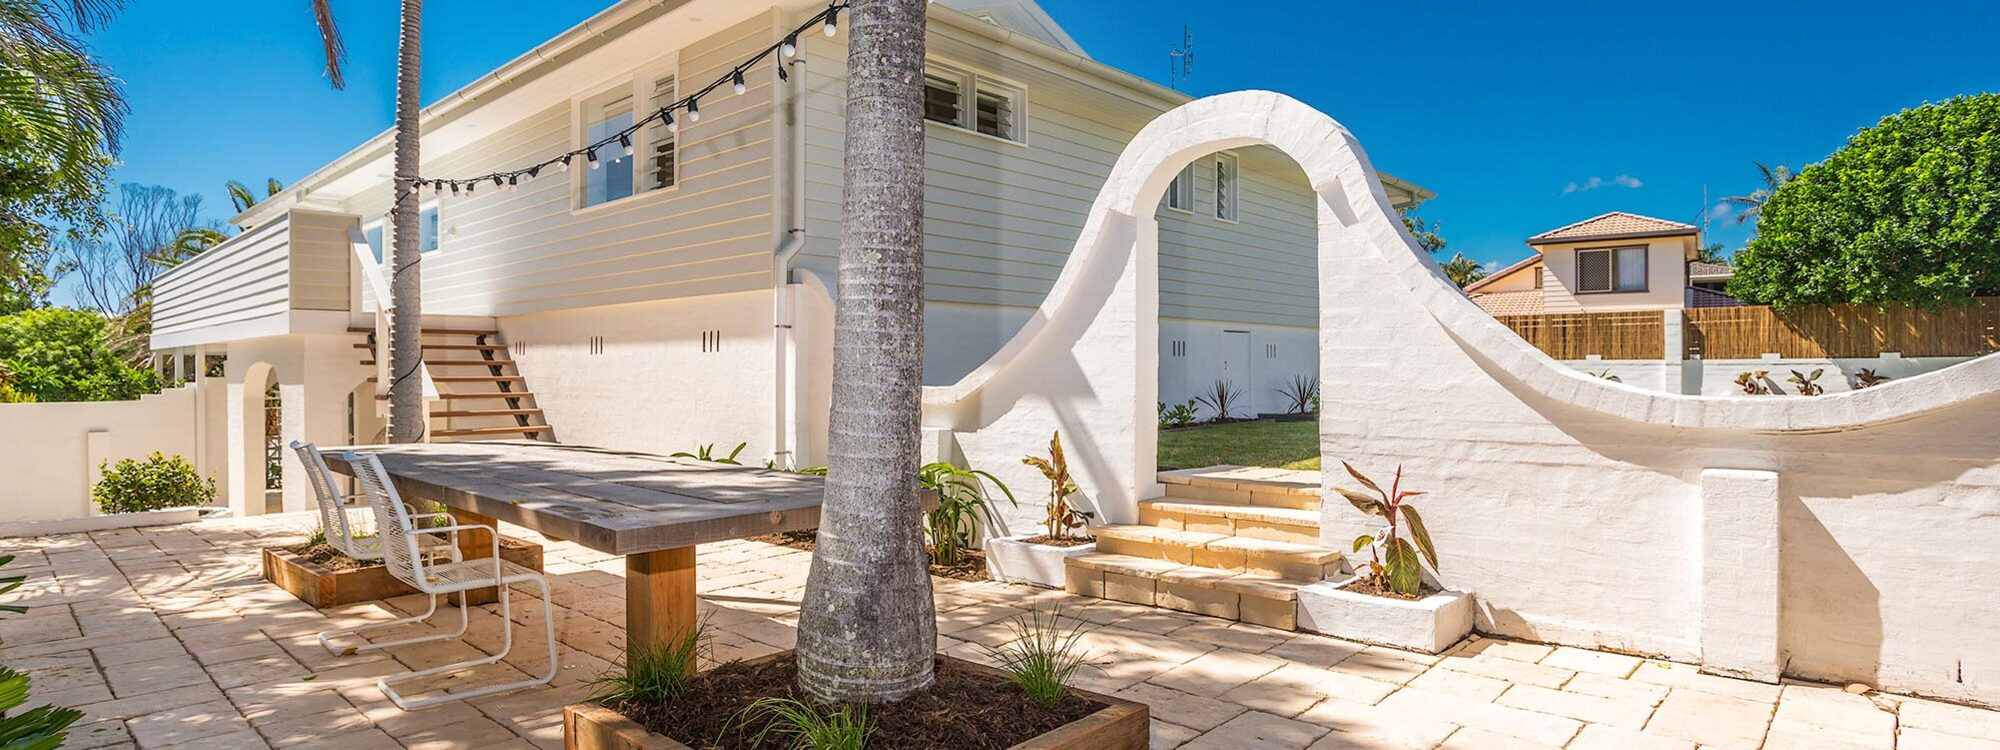 Castaway on Tallows - Byron Bay - Outdoor Courtyard Looking to Rear of House